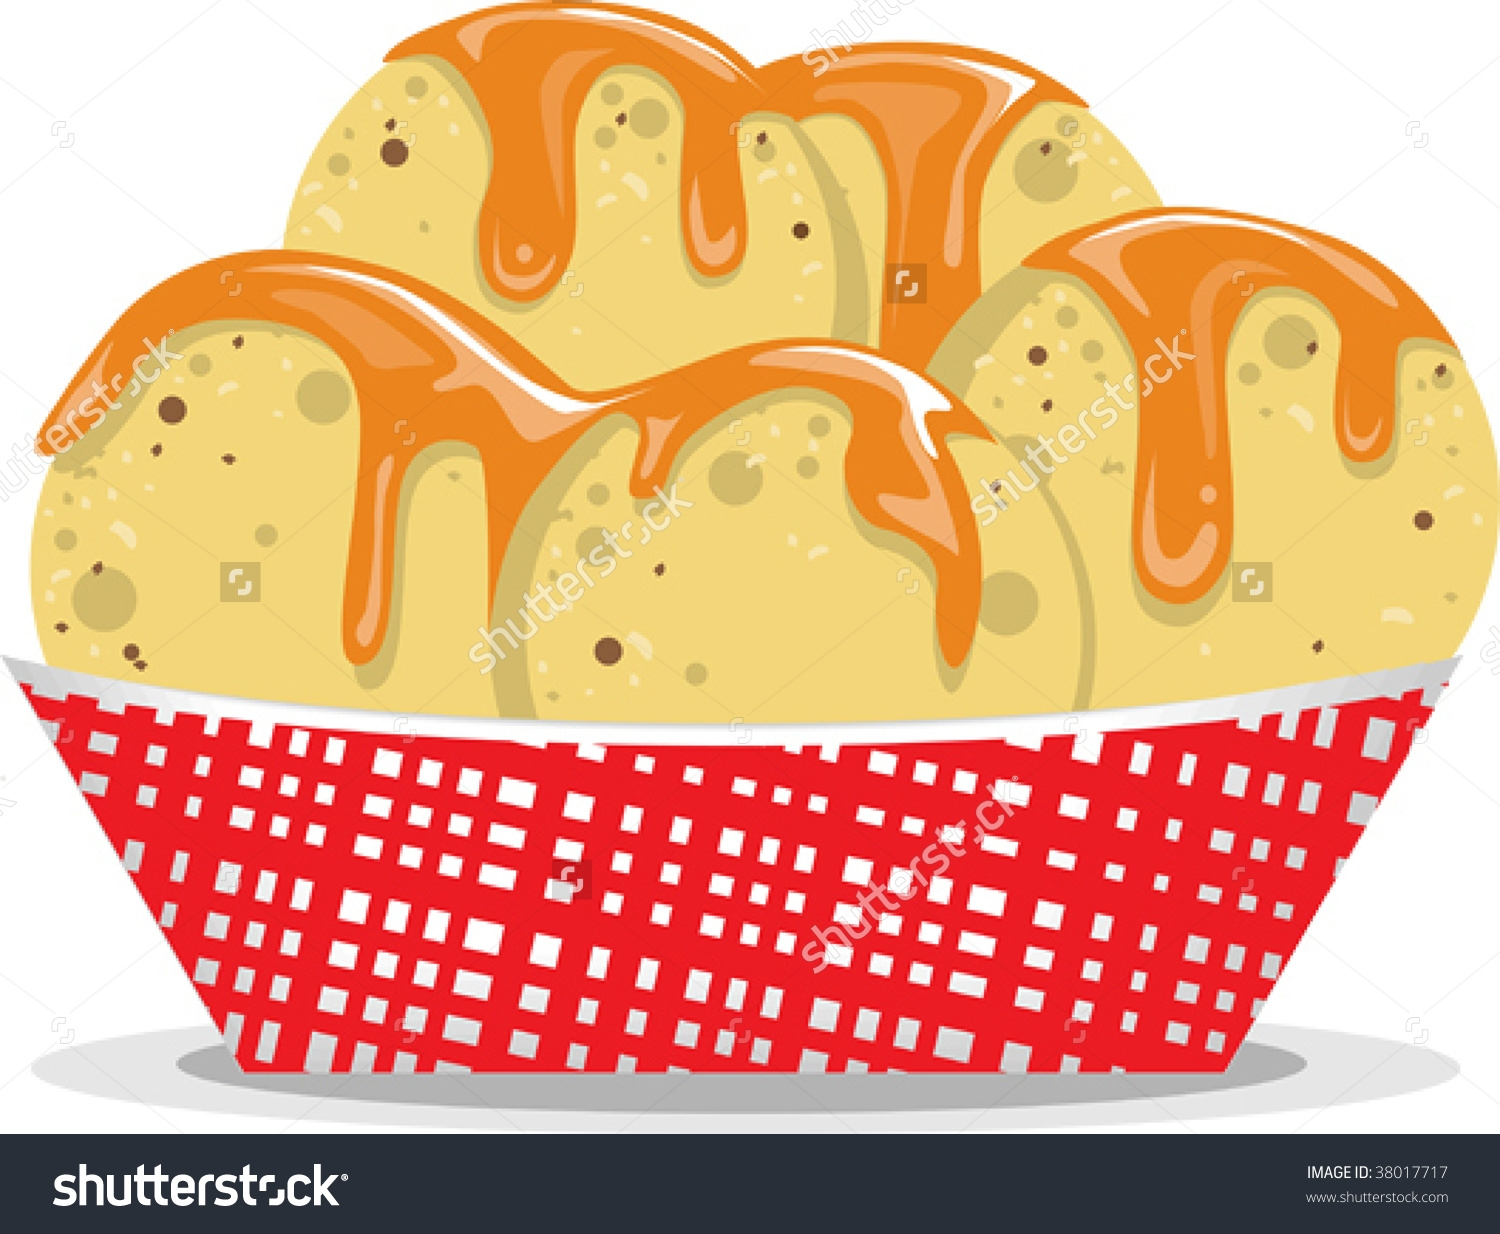 Nacho clipart. Fresh nachos gallery digital